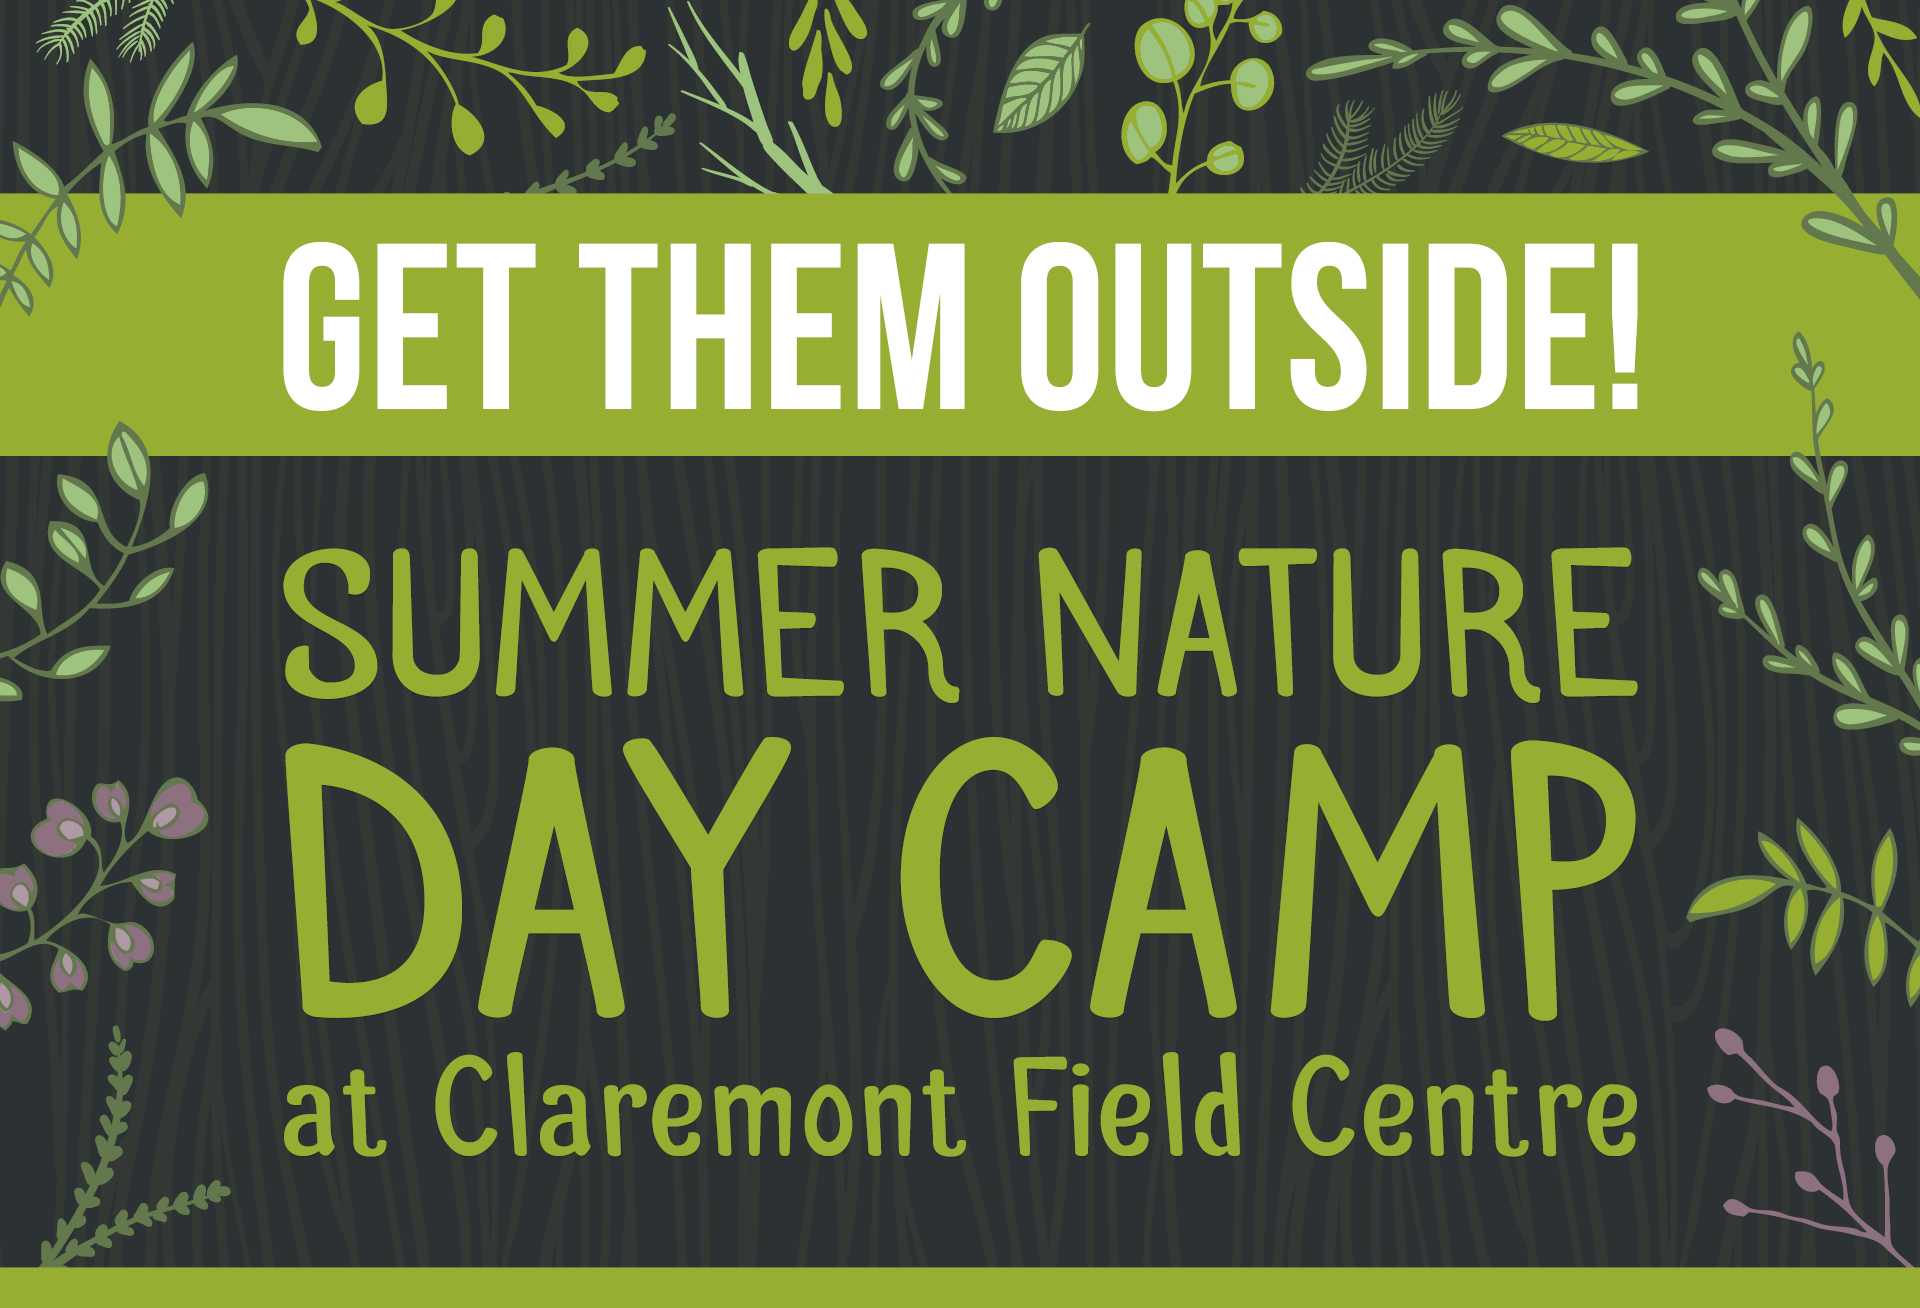 Summer Nature Day Camp at Claremont Field Centre feature image